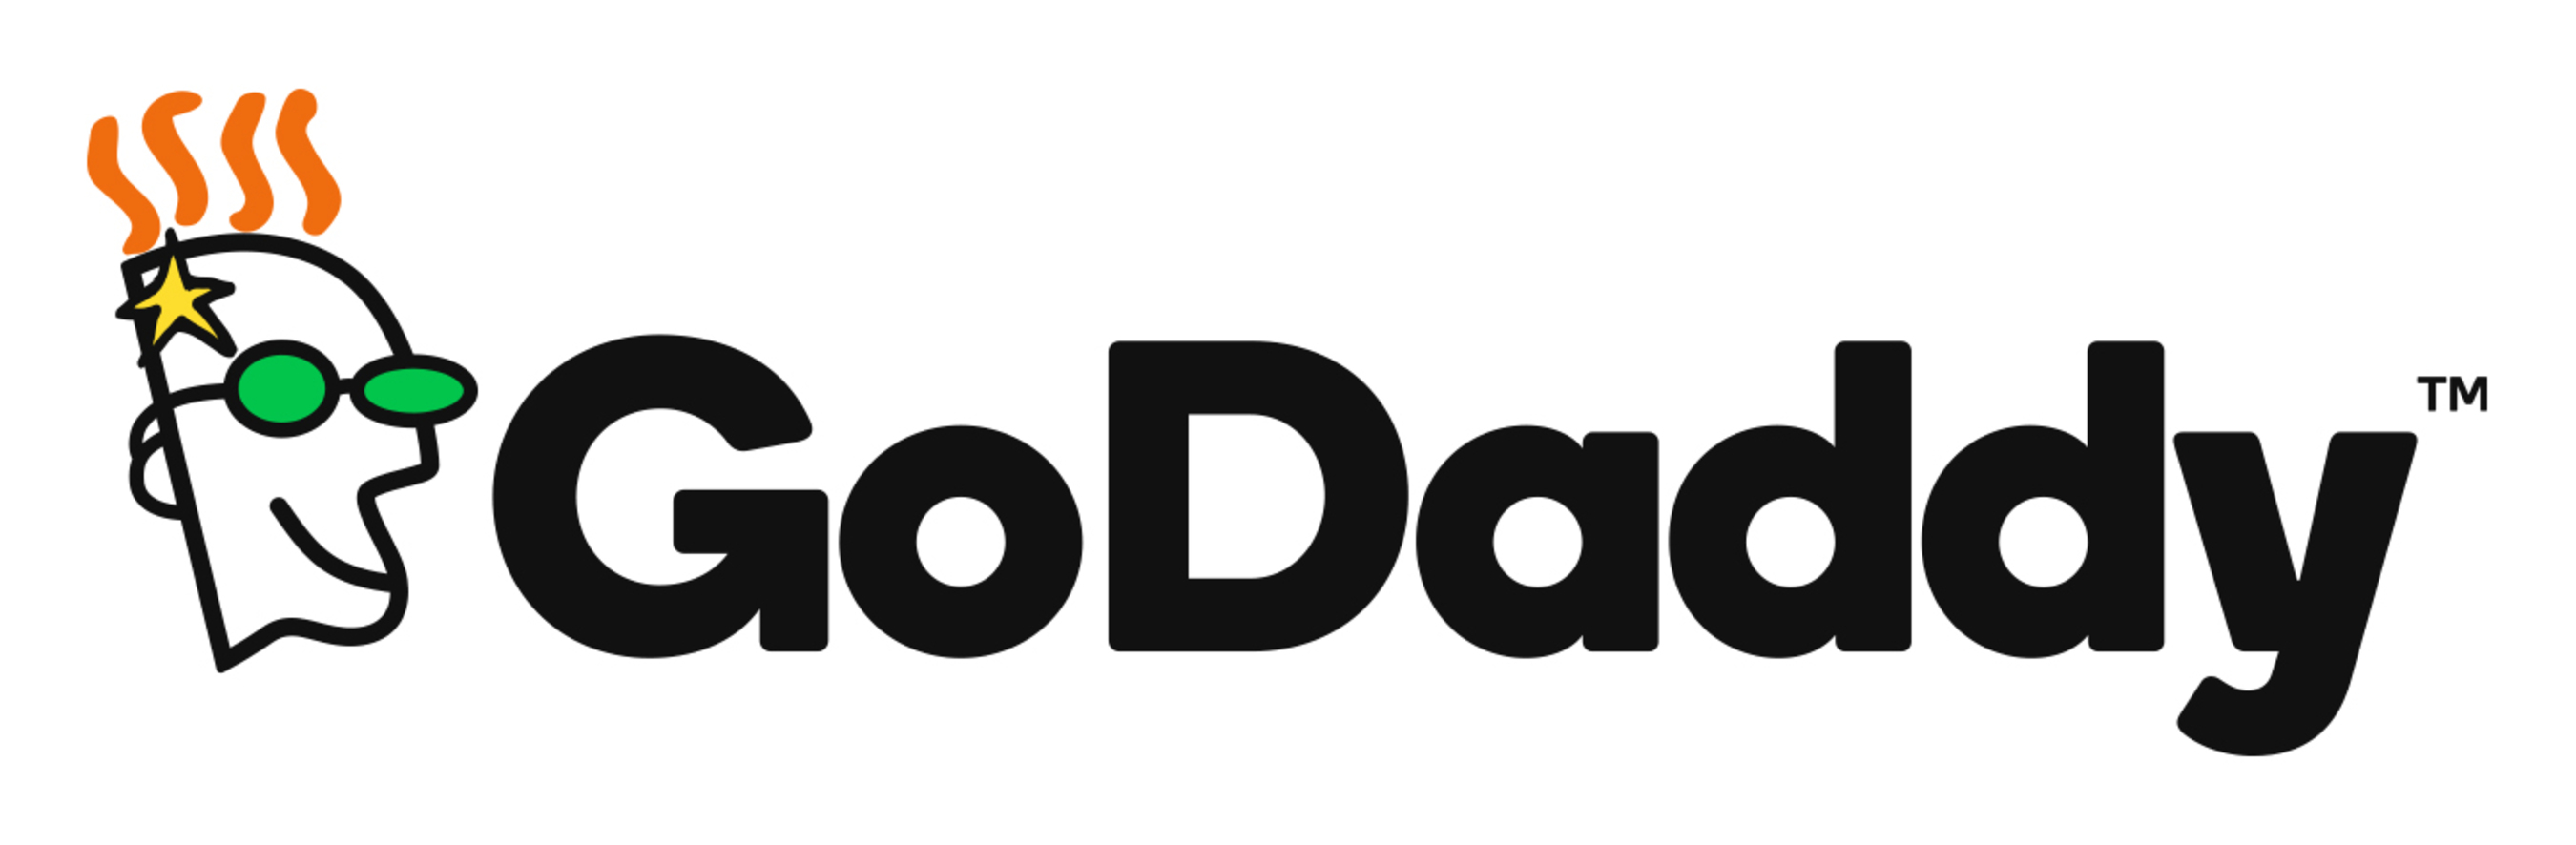 GoDaddy Announces Email Encryption And Email Archiving Features For Office 365 Users